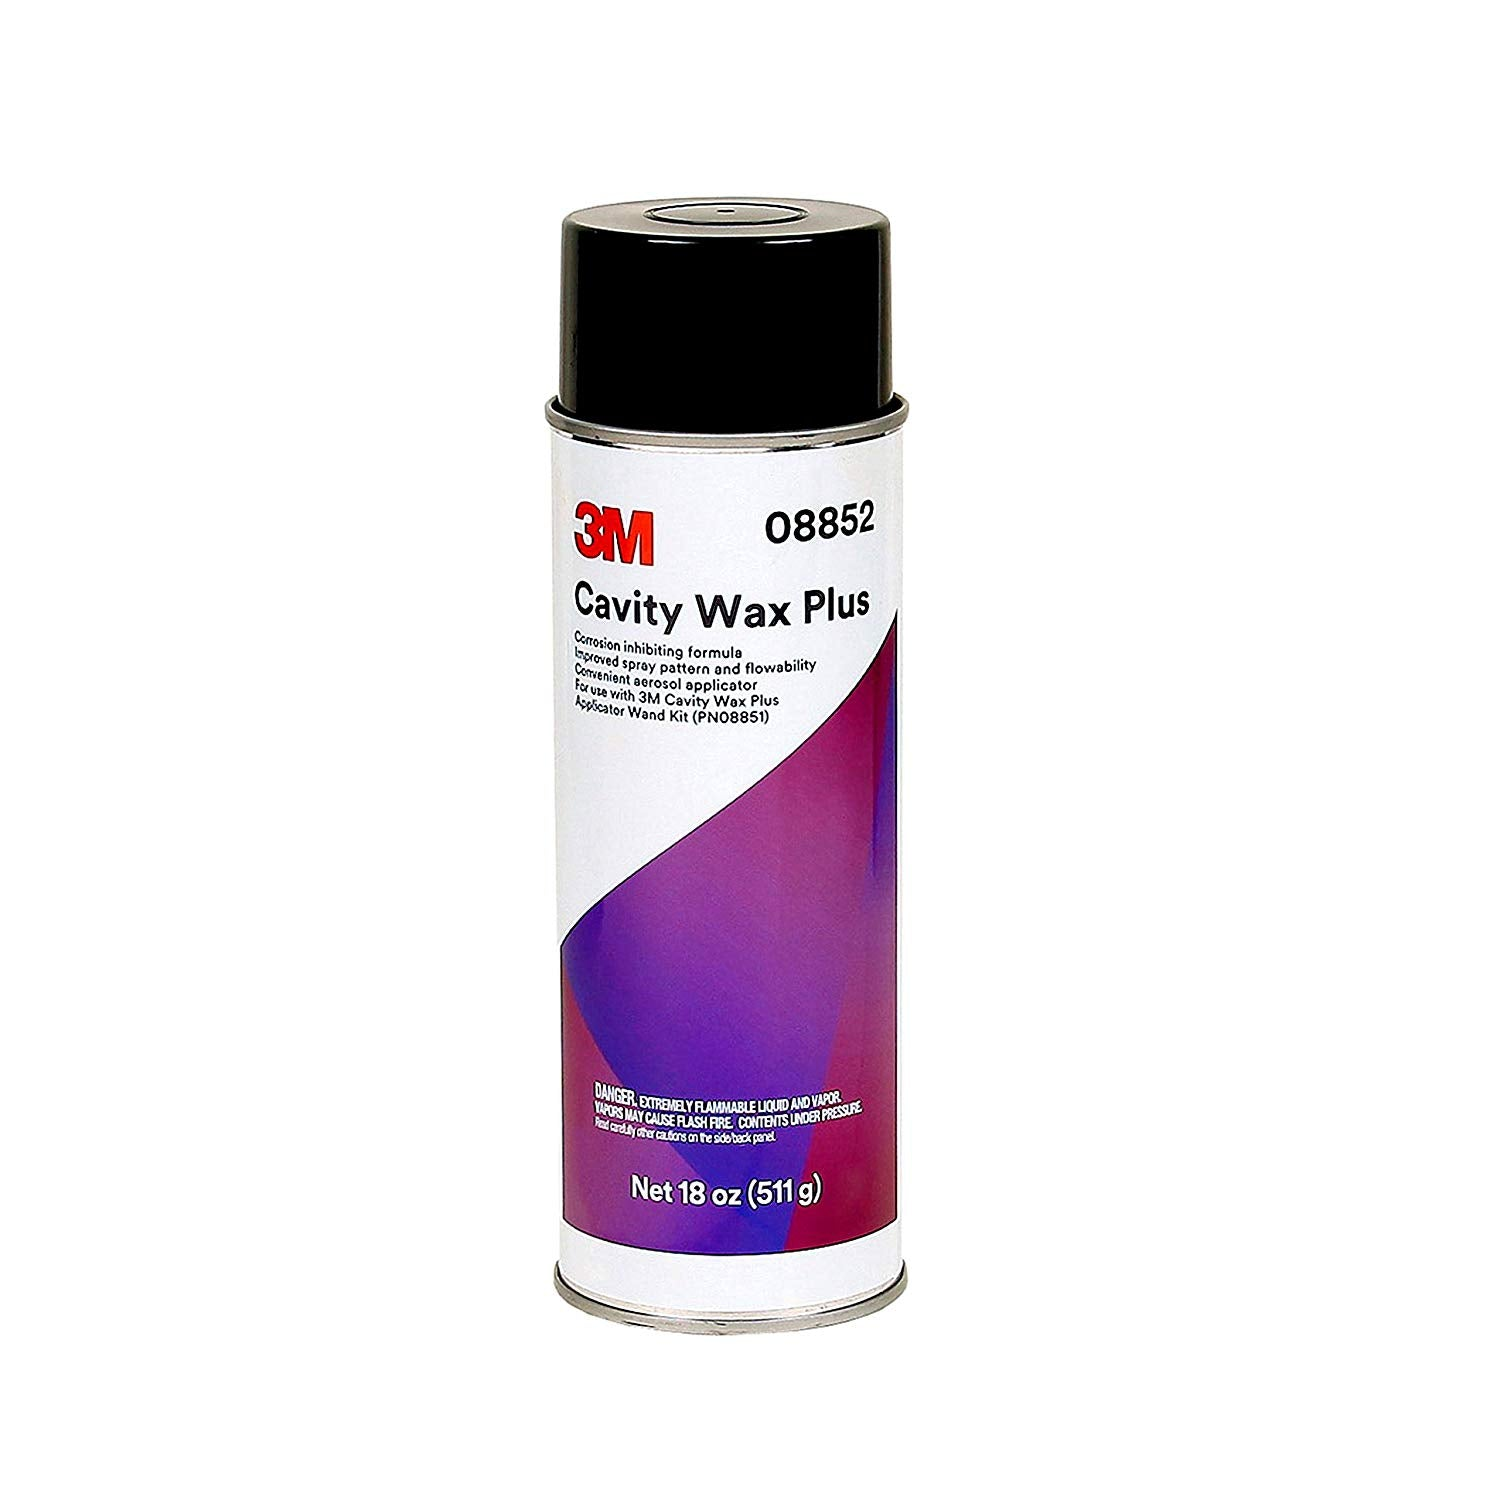 3M Cavity Wax Plus Corrision Inhibating Coating